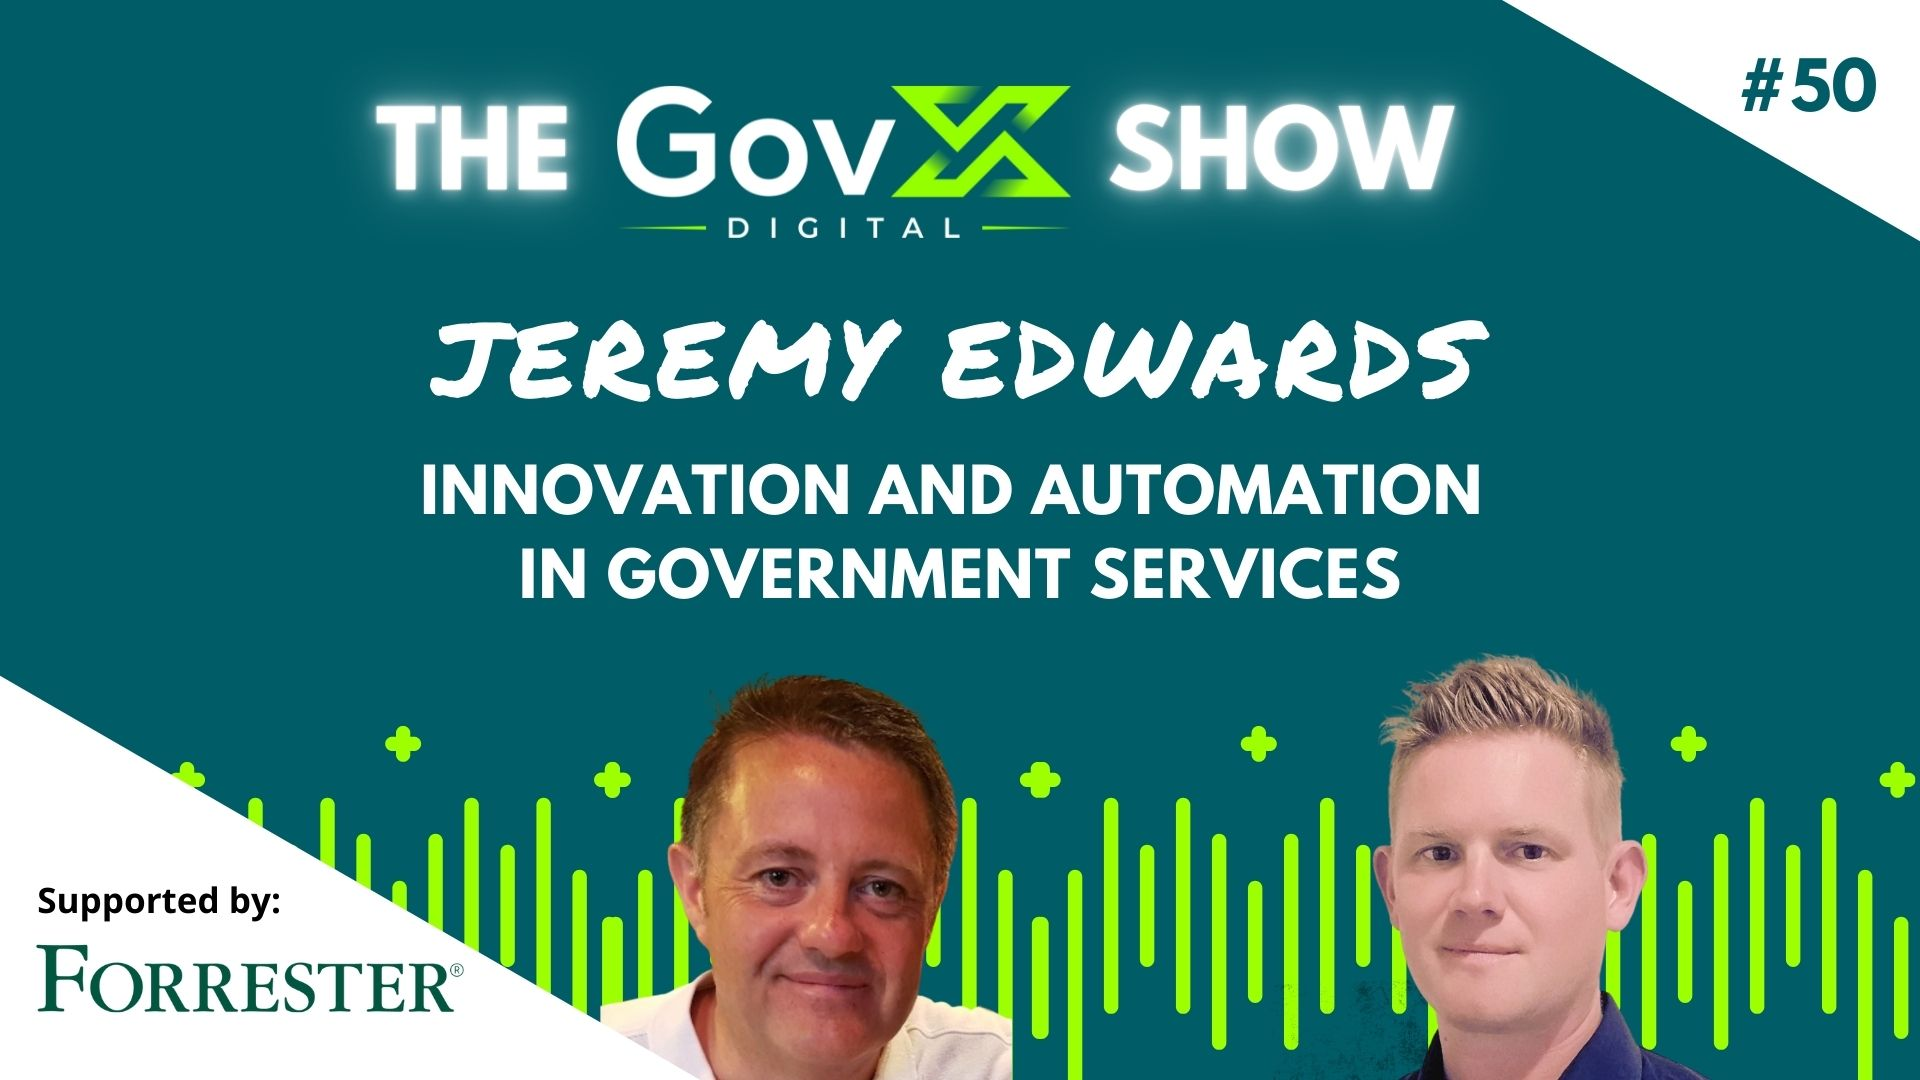 GovX Show #50: Innovation and Automation in Government Services - Jeremy Edwards, DWP Digital